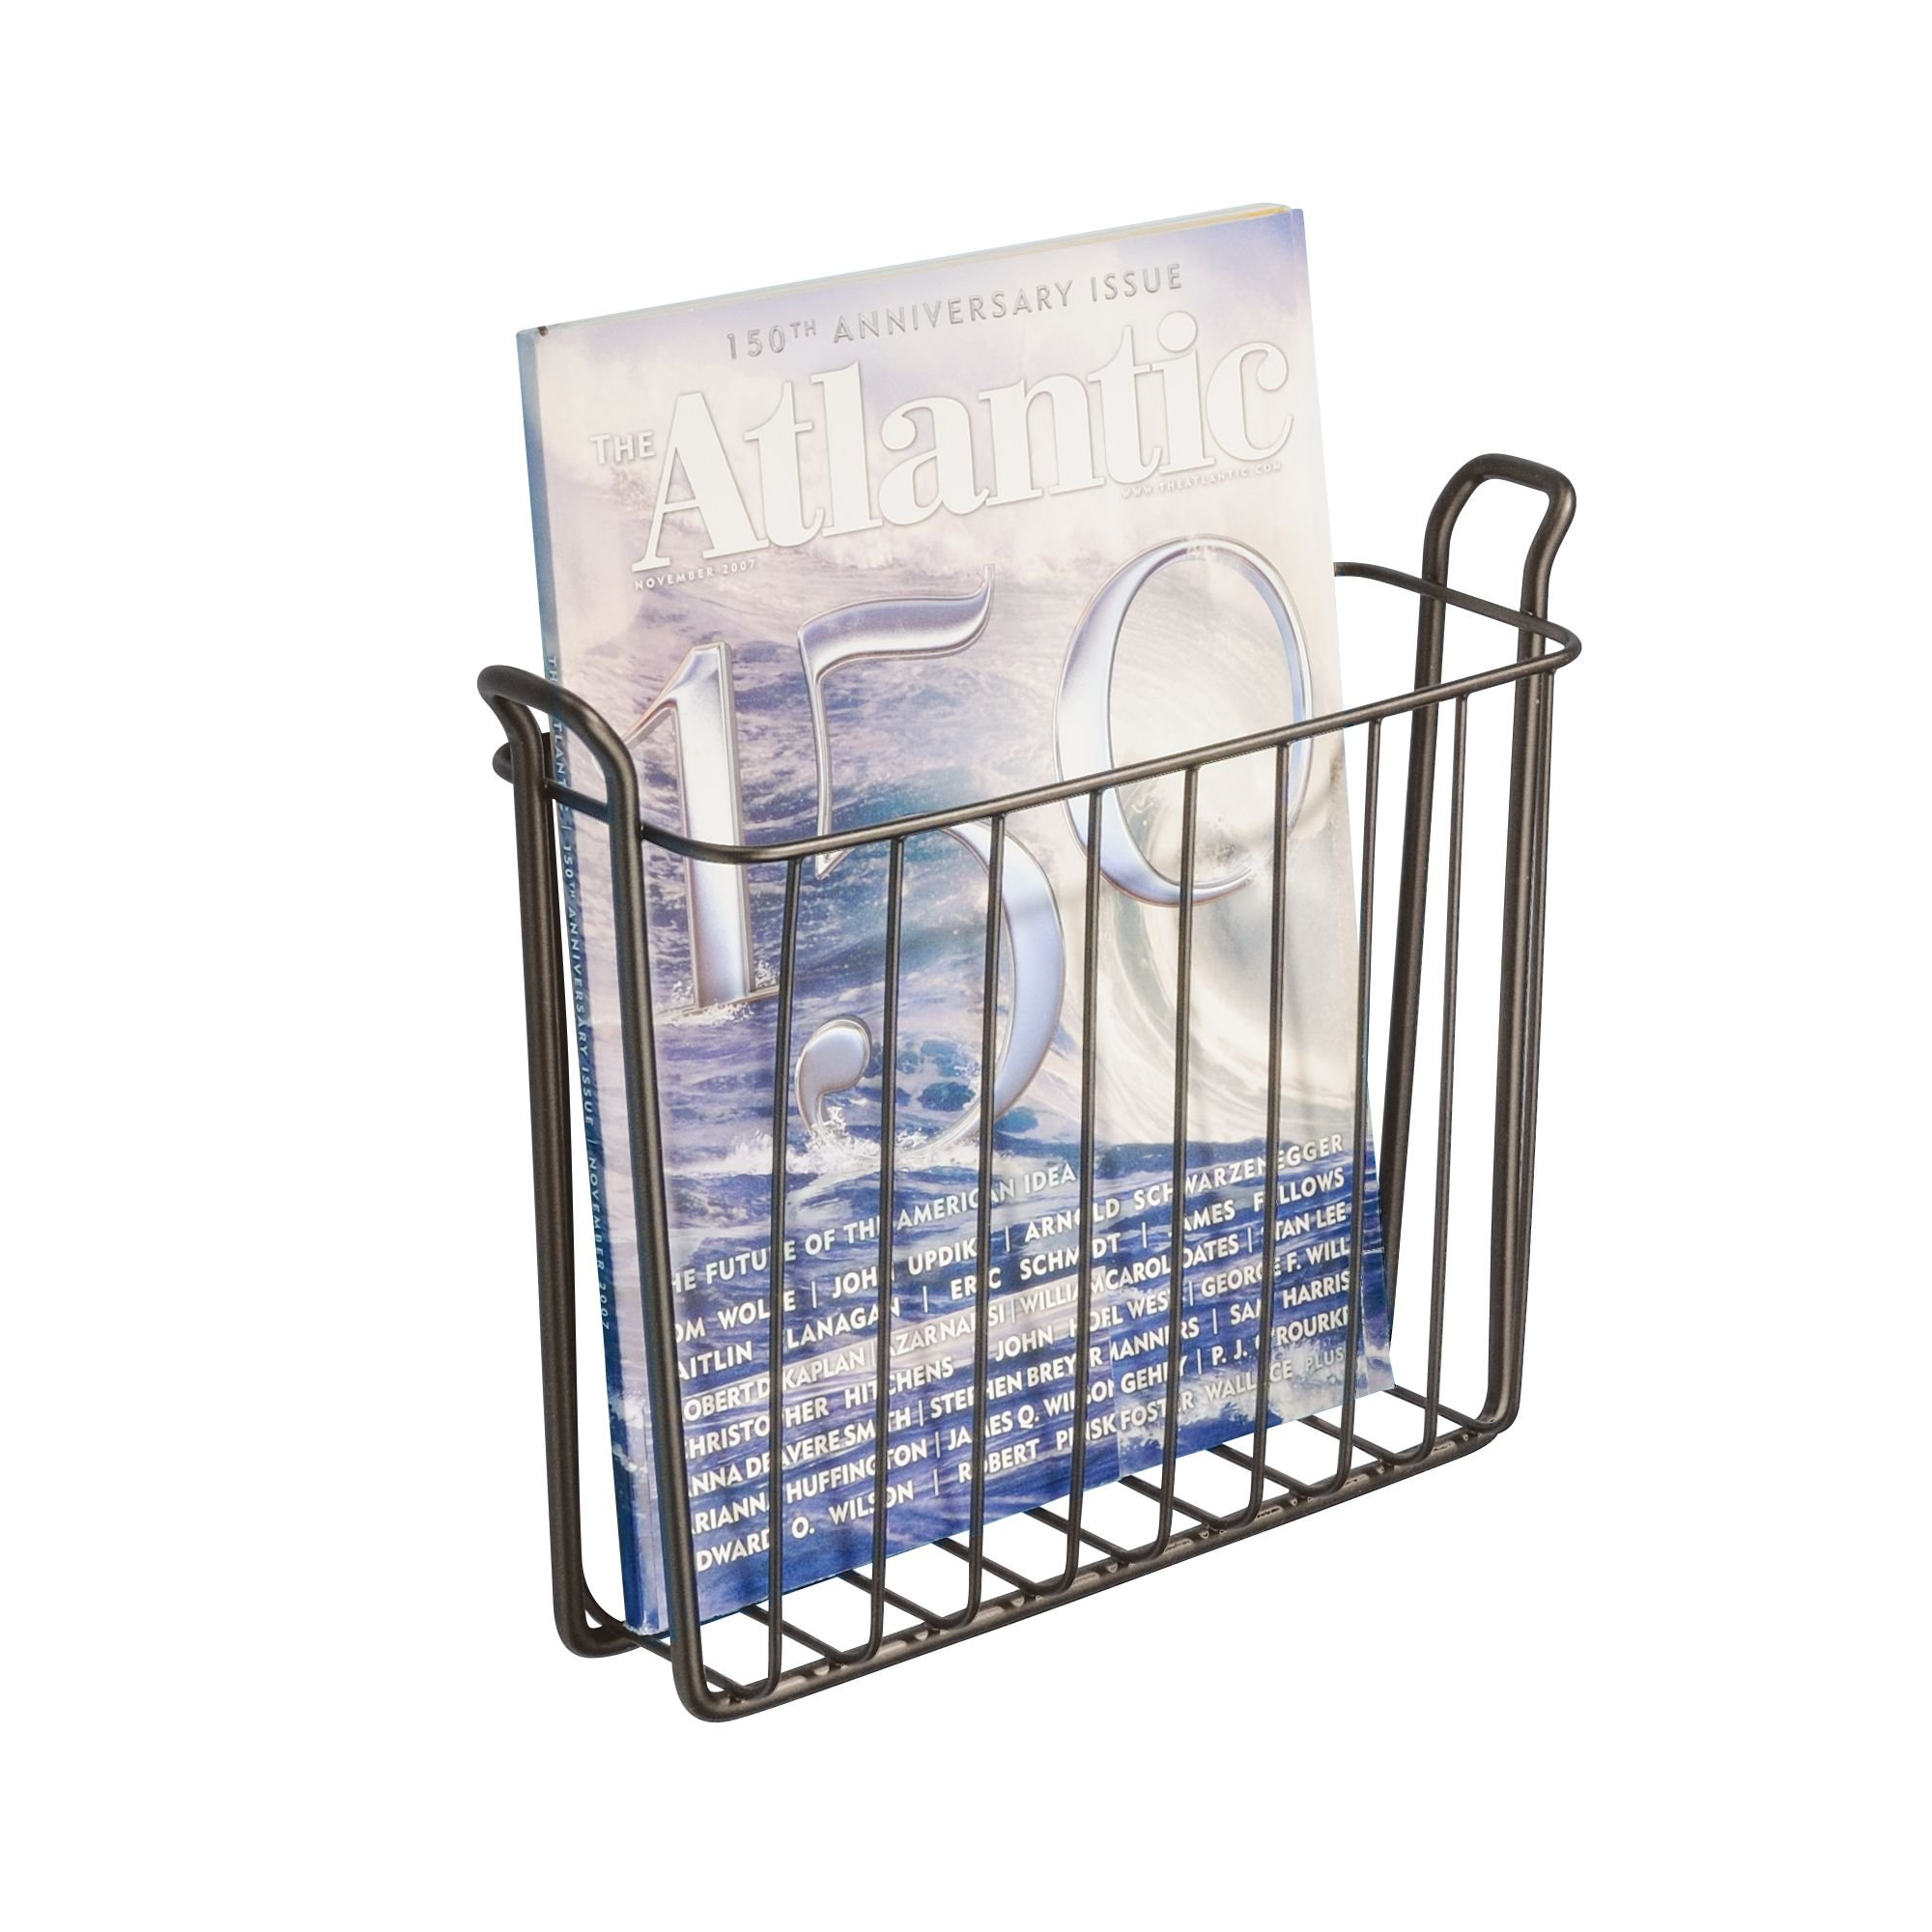 iDesign Classico Steel Wire Wall Mount Newspaper and Magazine Holder Rack for Bathroom Organization, Bronze by iDesign